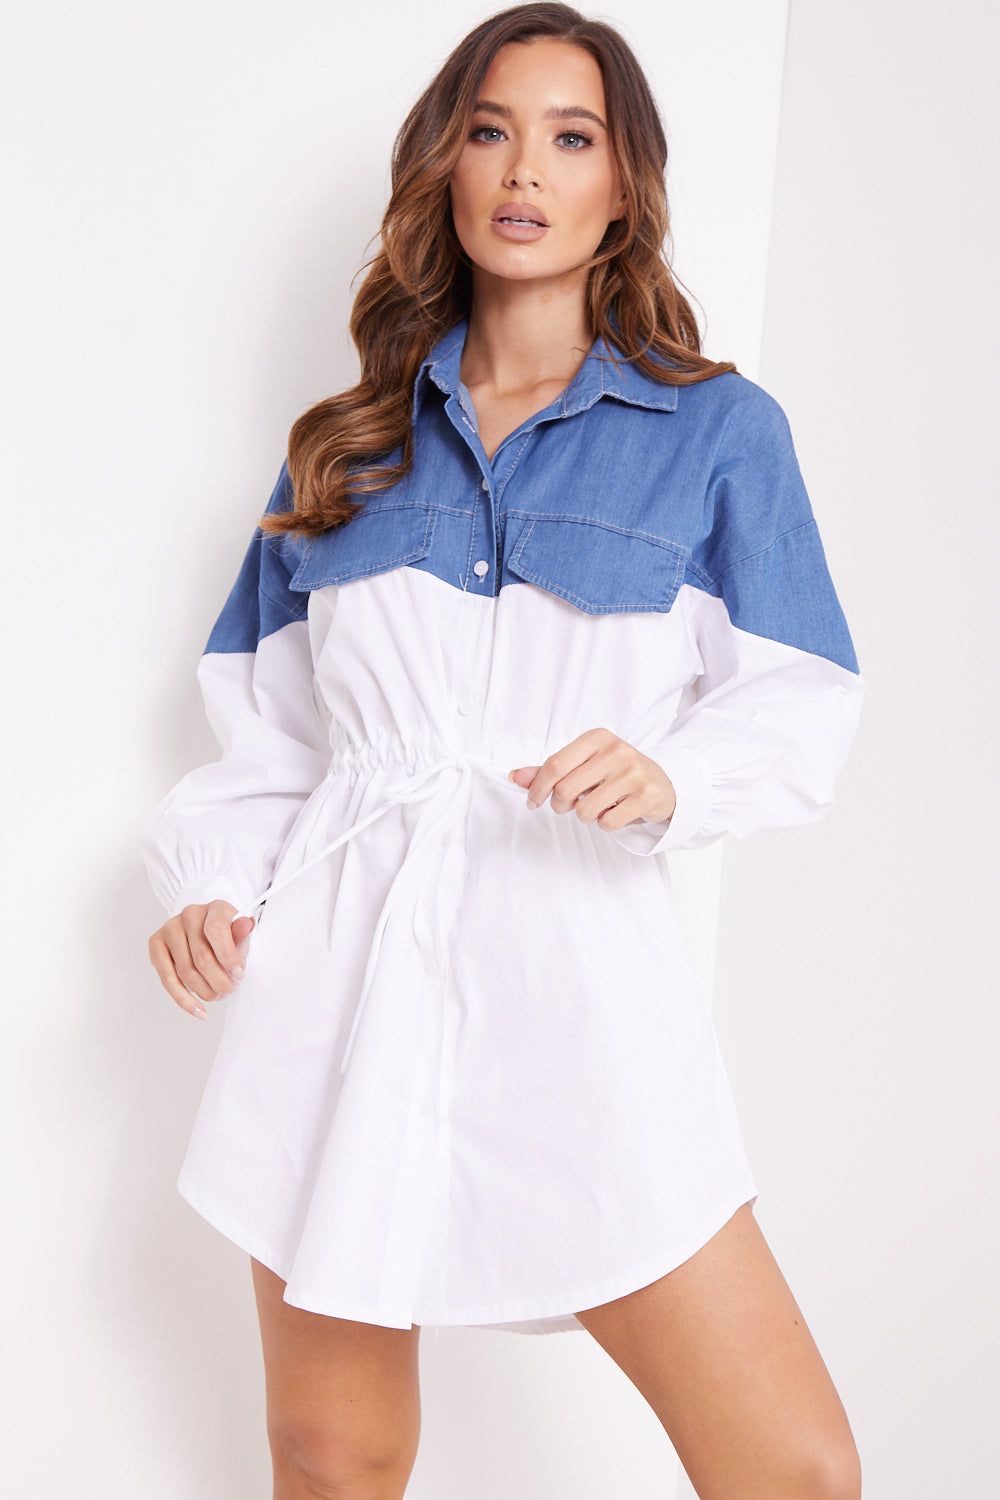 Blue and White Contrast Shirt Dress